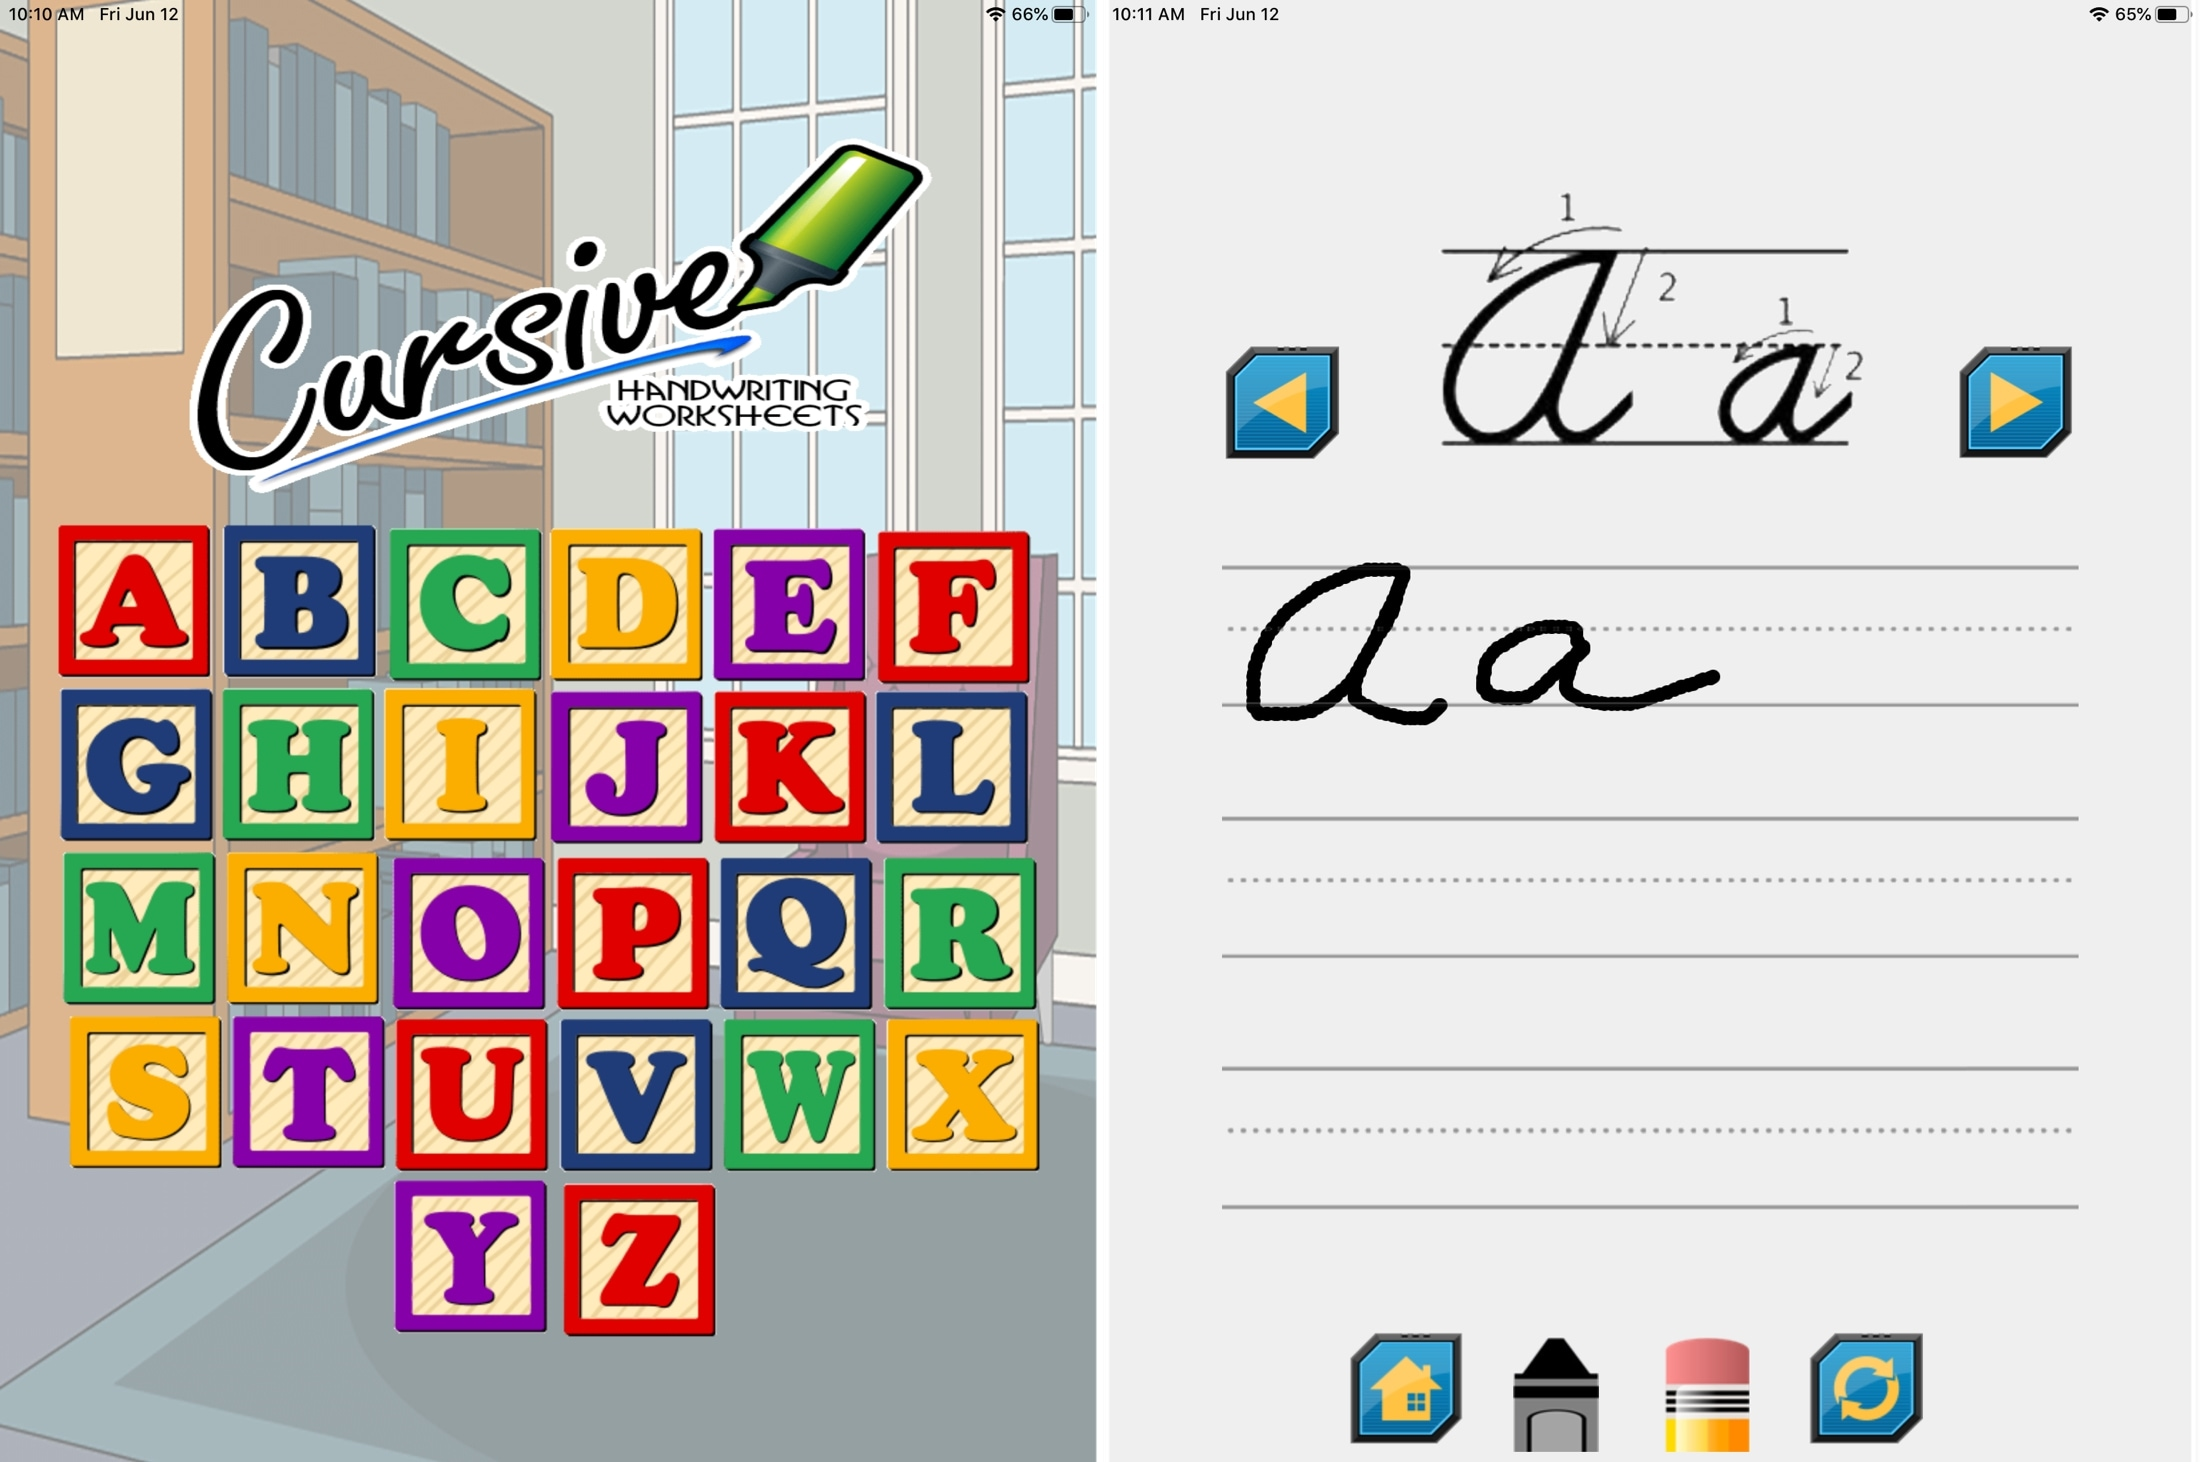 A to Z Cursive Writing Worksheets iPad